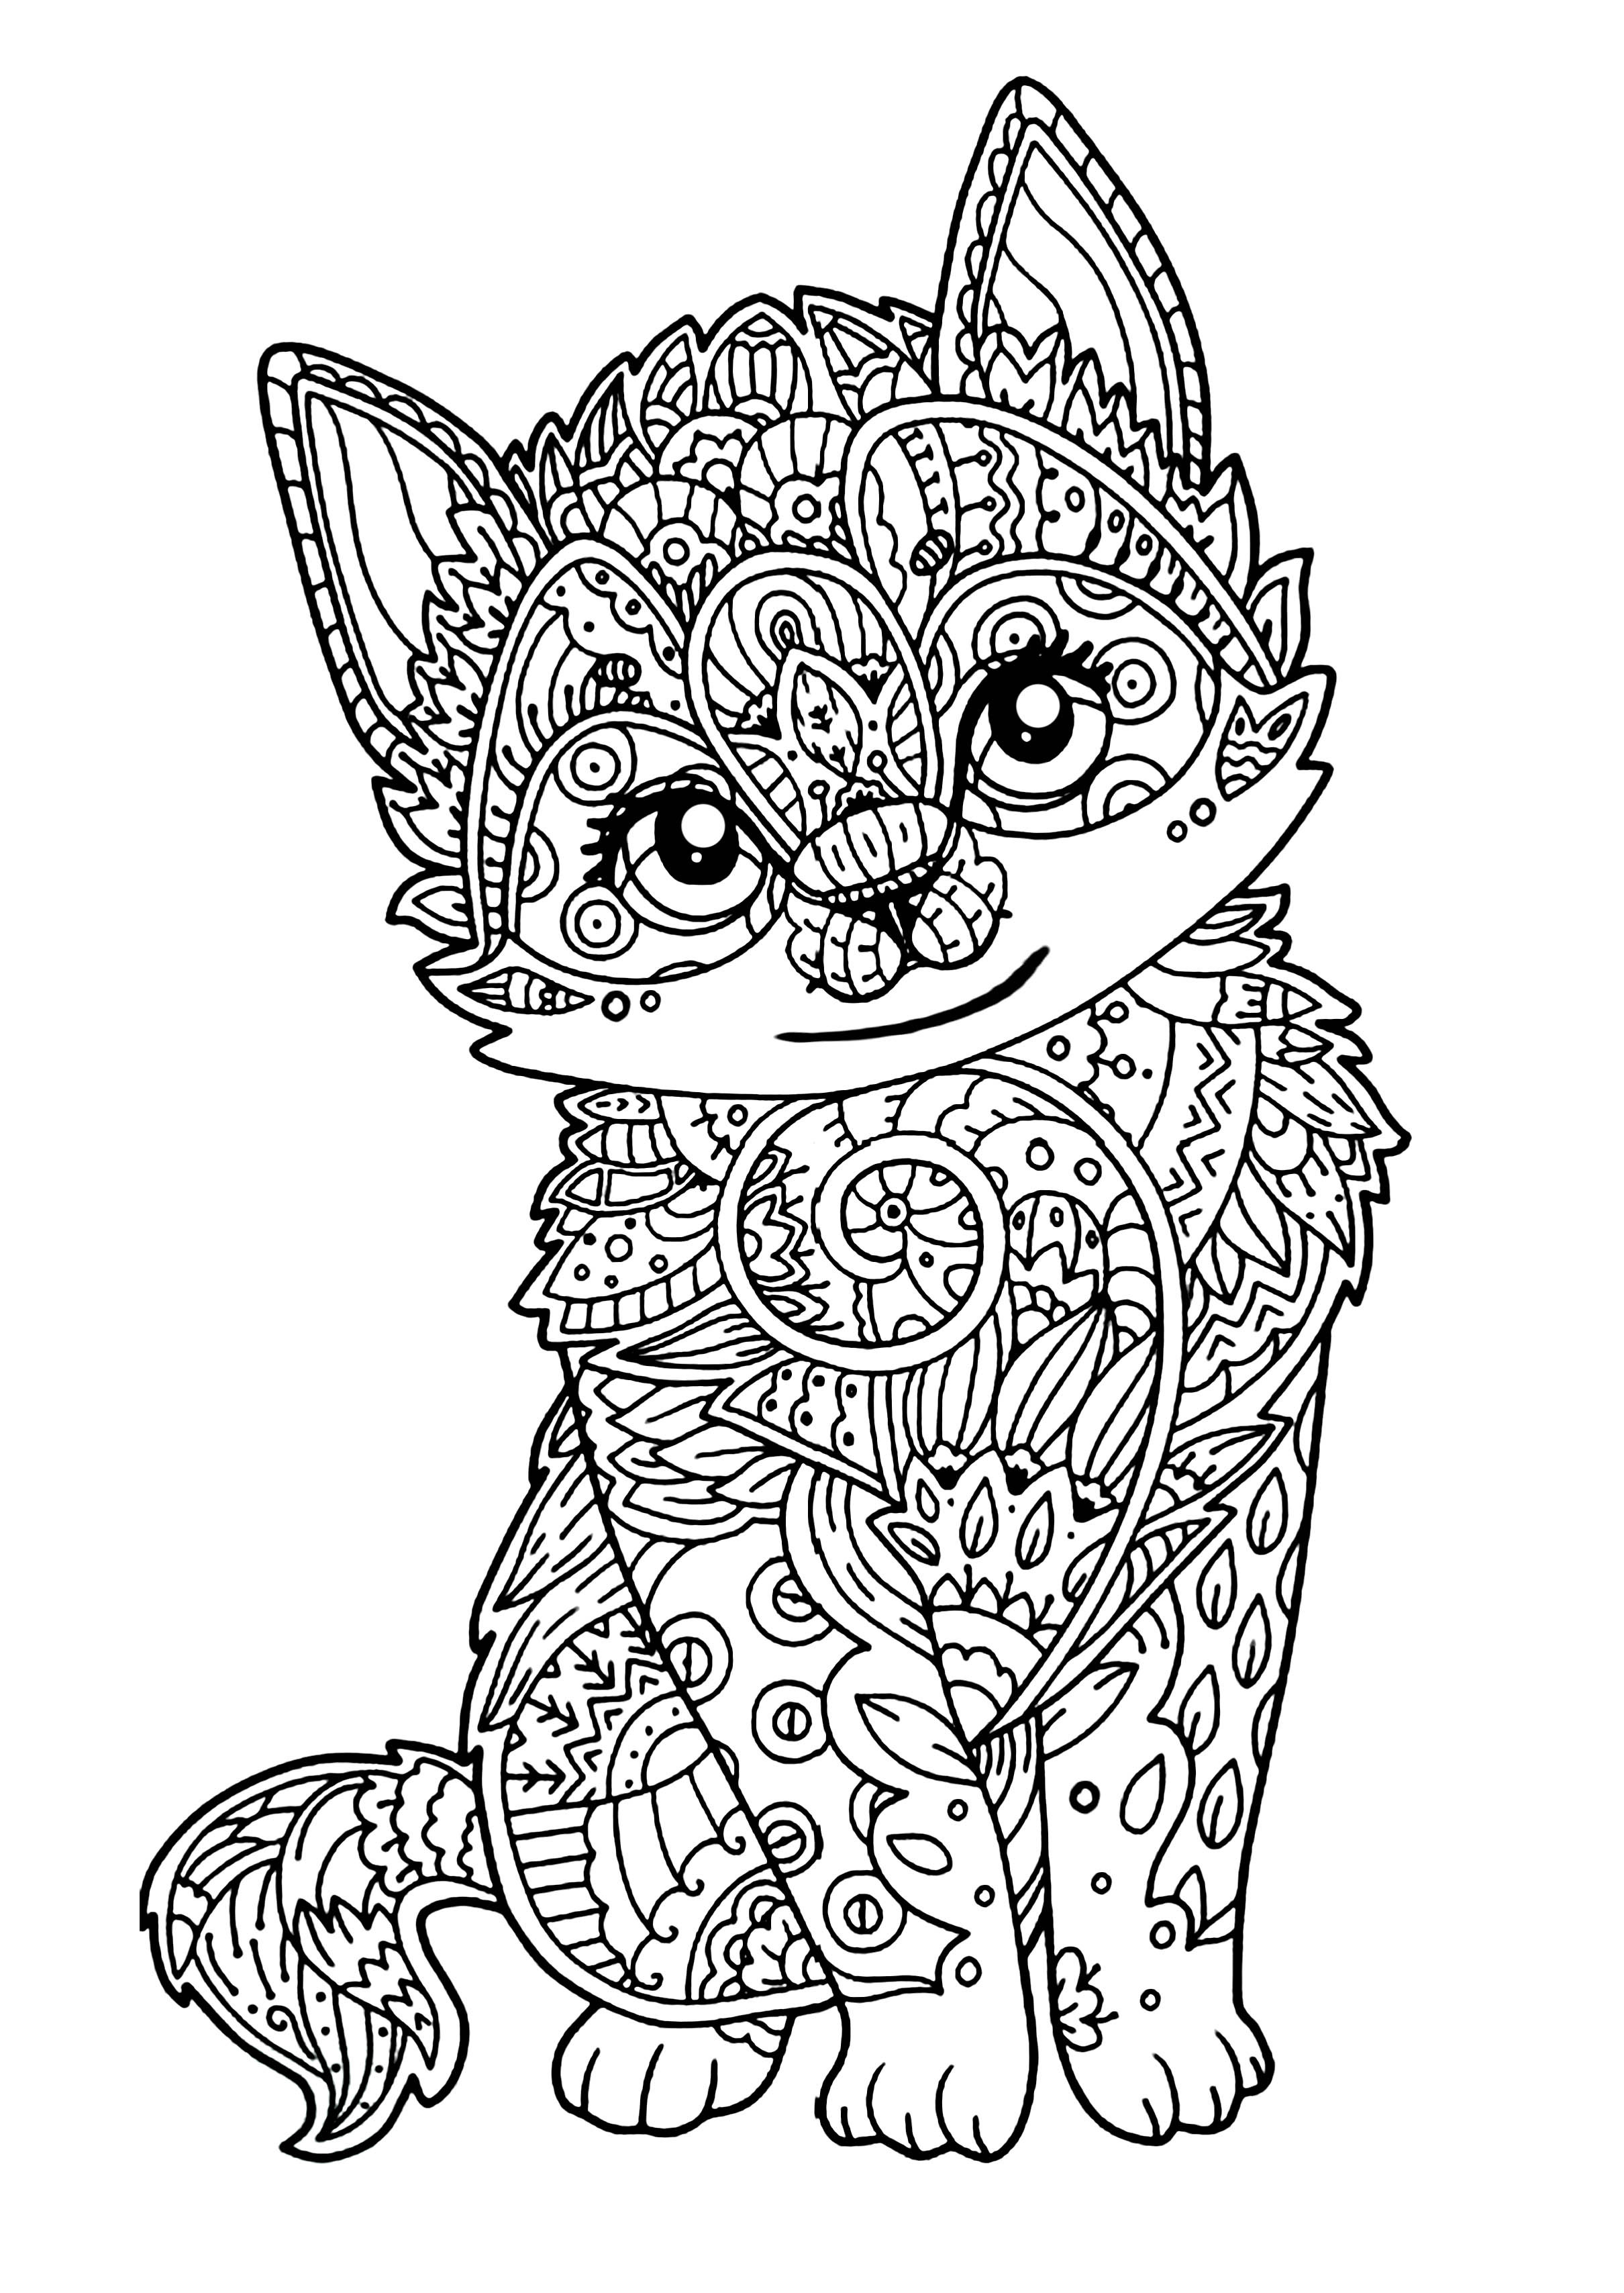 Cute Animal Coloring Pages For Adults  Cute kitten Cats Adult Coloring Pages